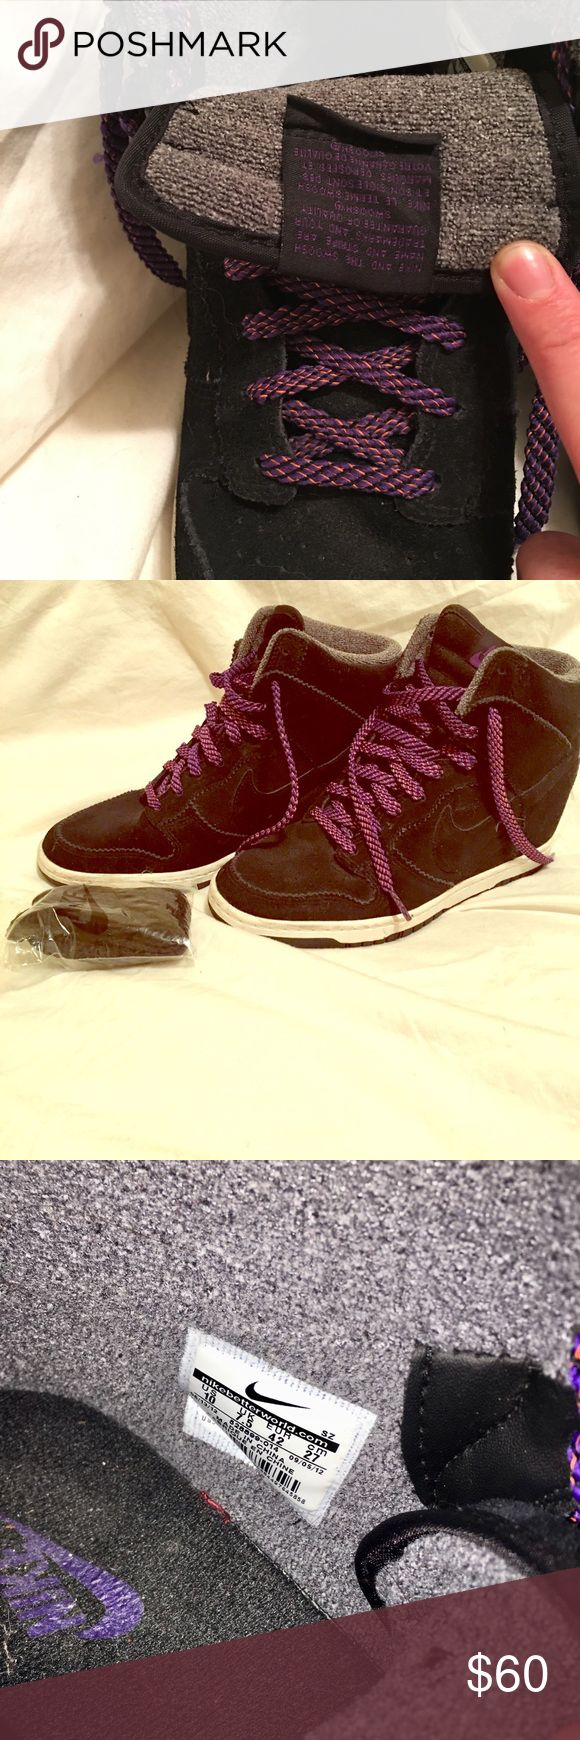 Nike Women's Wedge Sneaker Black suede/grey lining with purple laces. Spare set of black laces included, never used. Worn less than 5 times, and never in rain/wet weather. Nike Shoes Athletic Shoes